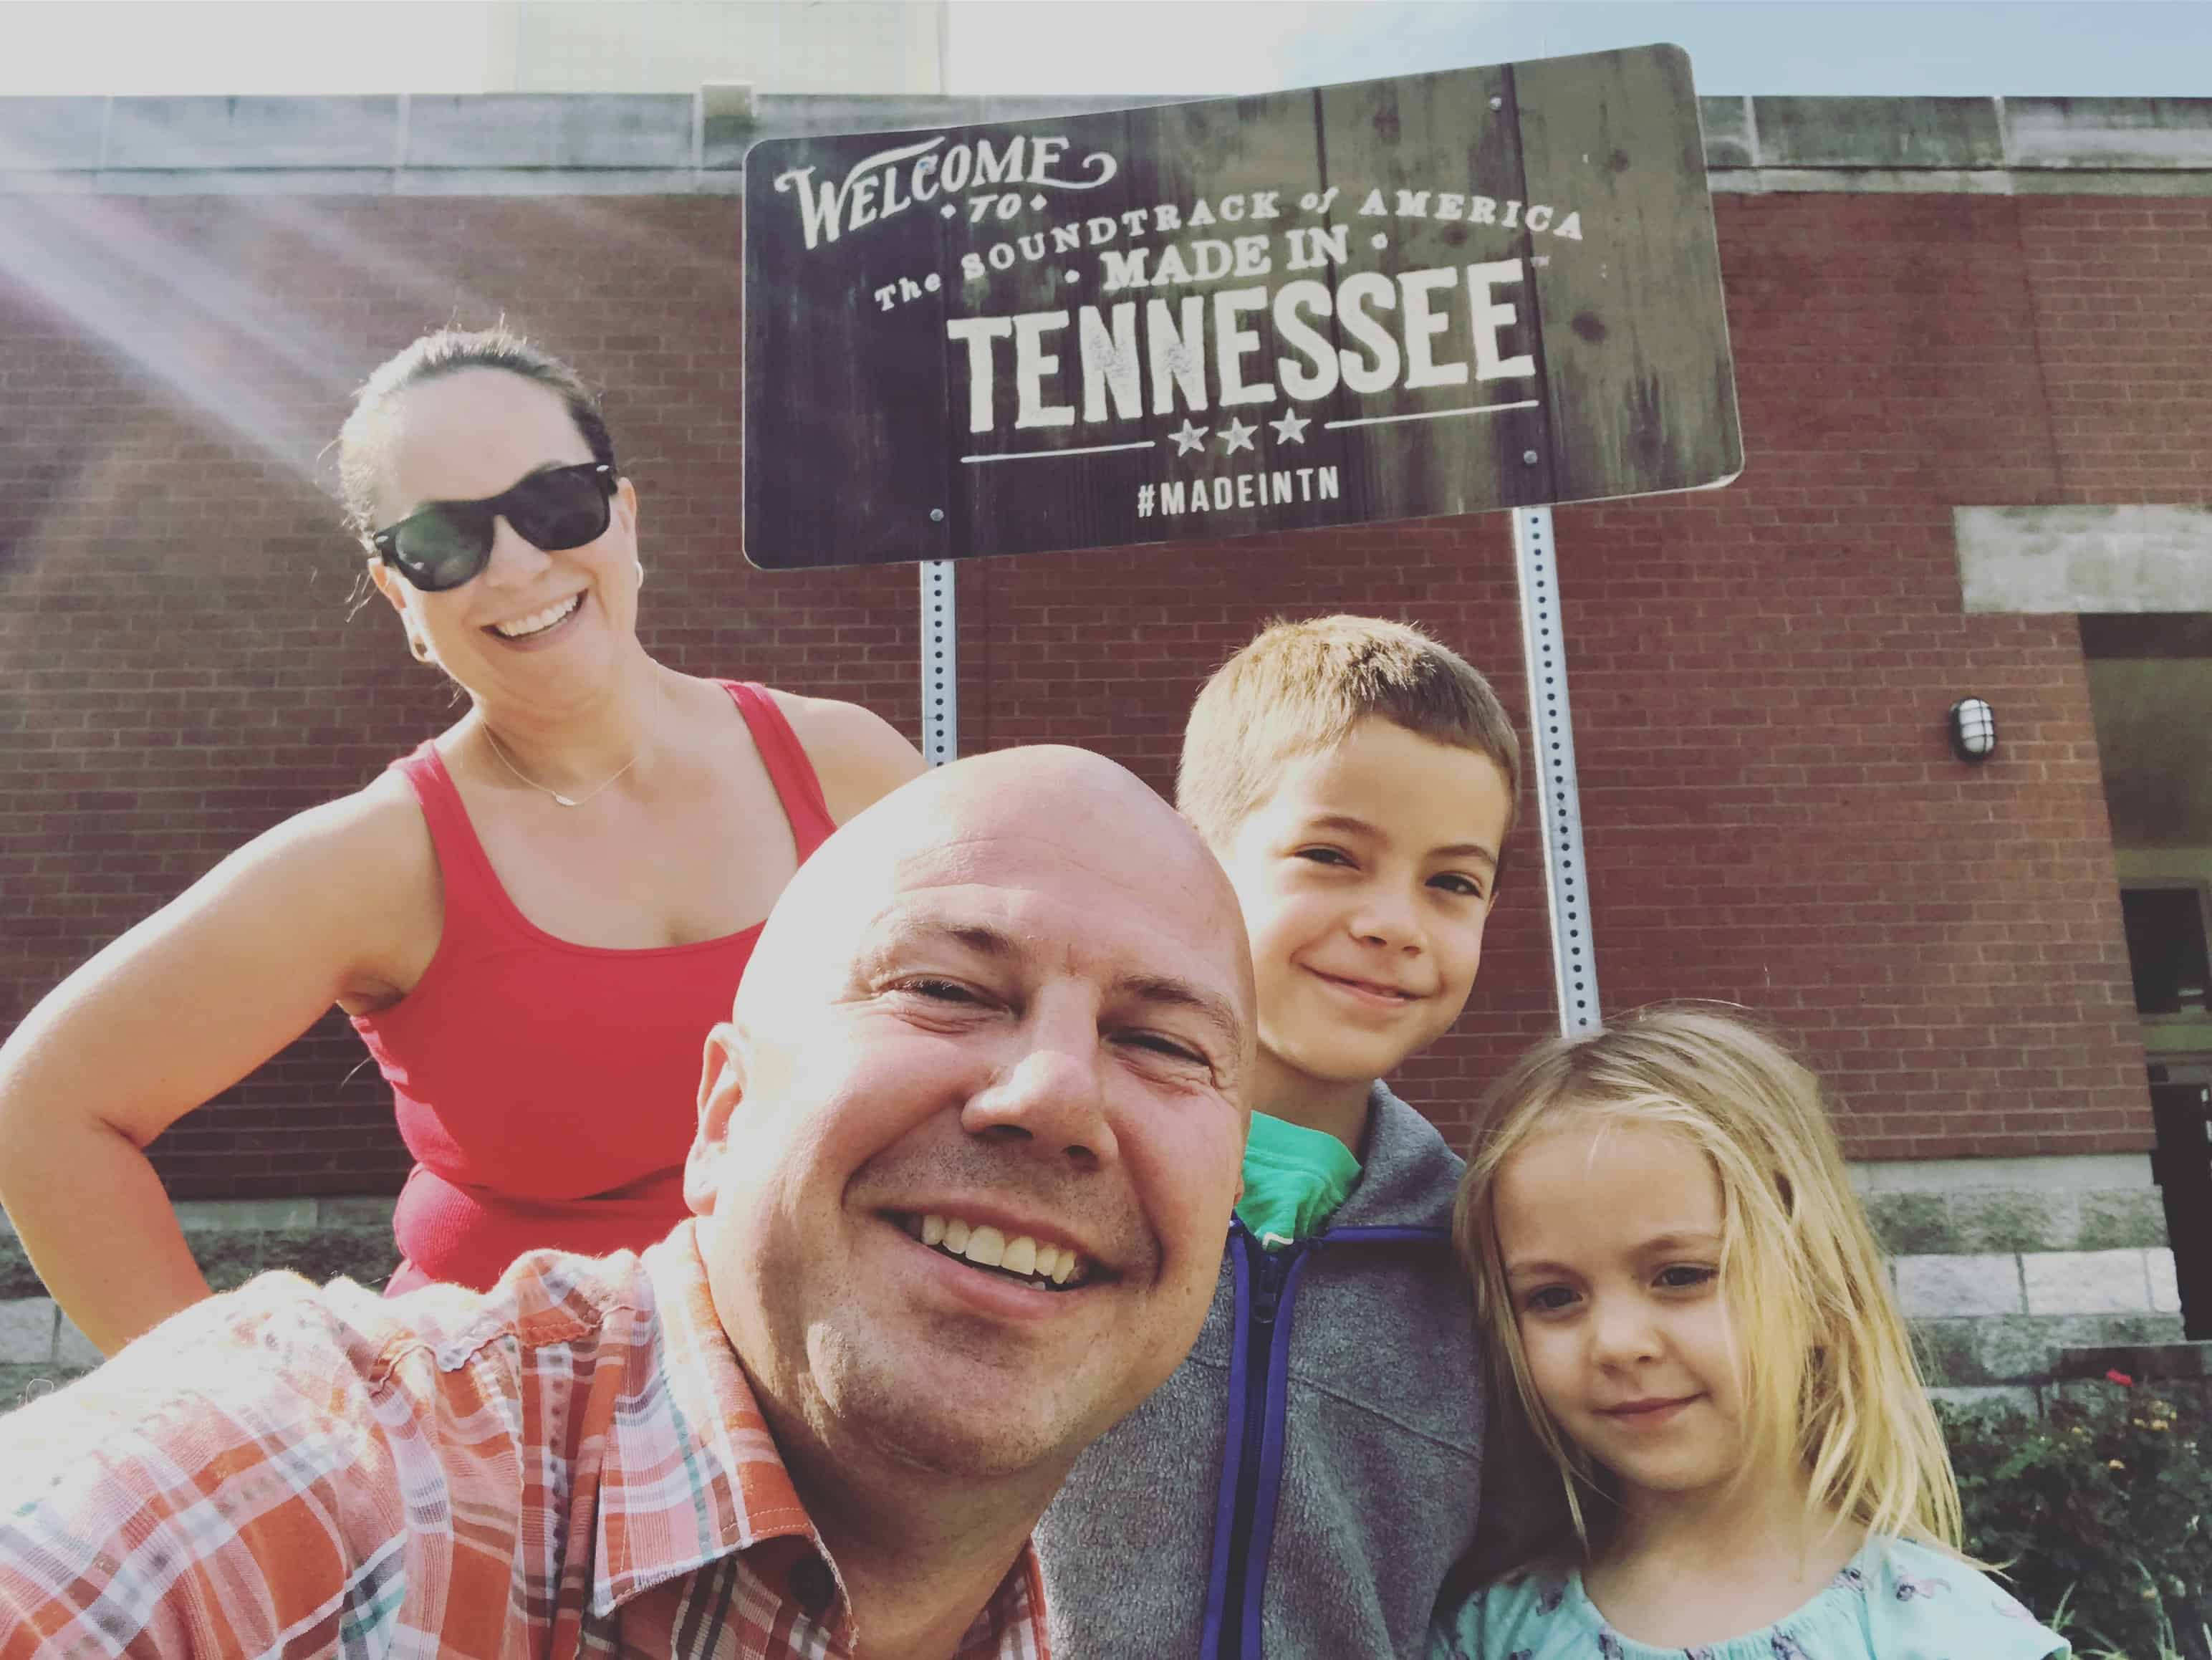 Nashville Road Trip 2018-07 Tennessee state line